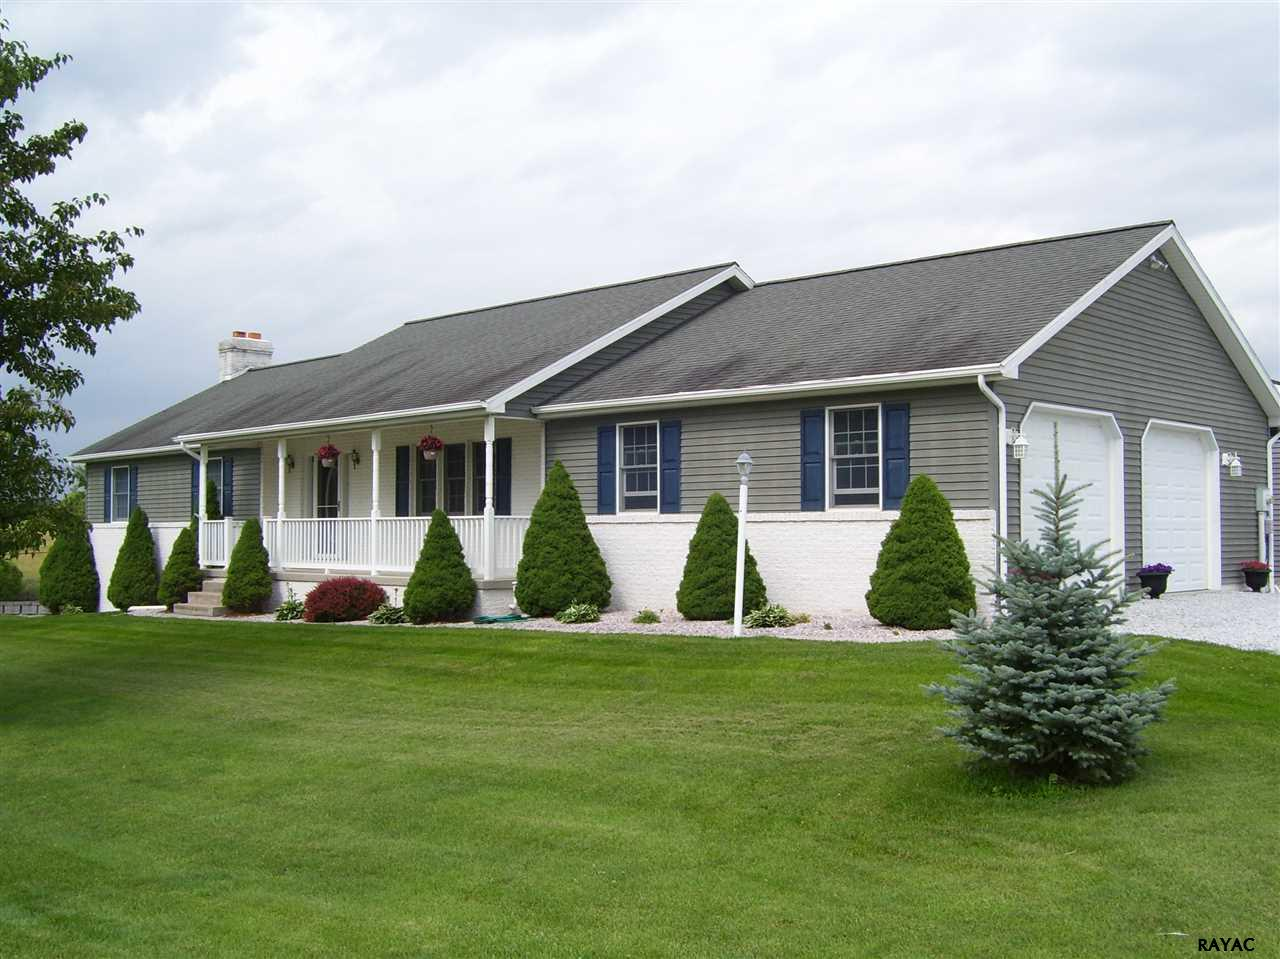 2826 Tract Rd, Fairfield, PA 17320